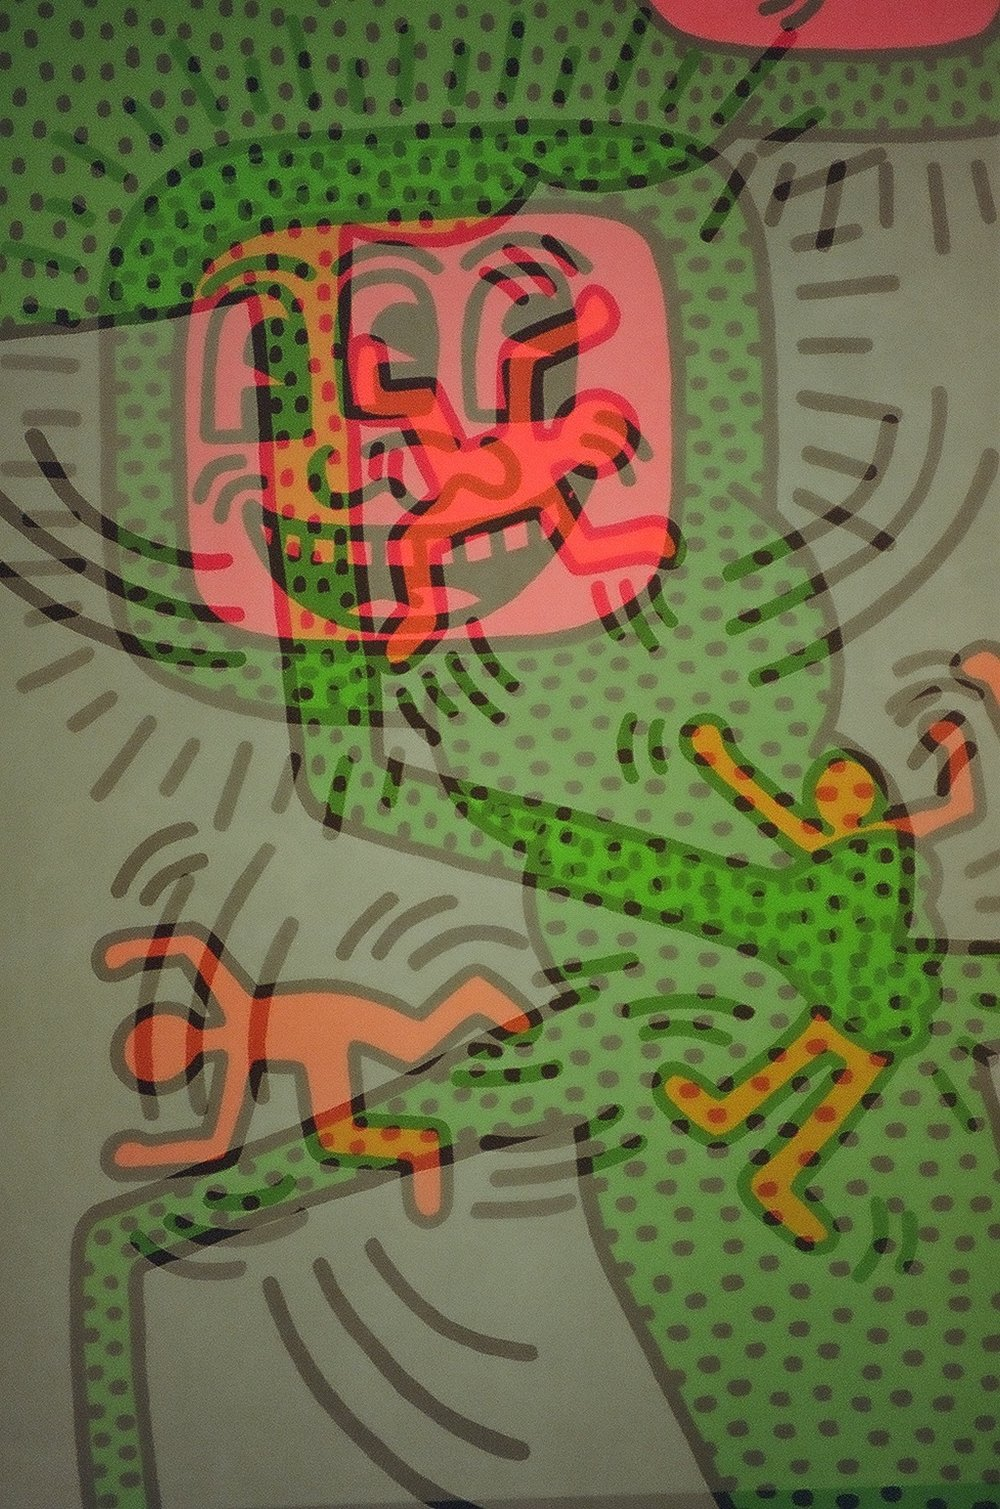 Untitled 1984 April 13,  Keith Haring Allouche Gallery, Chelsea